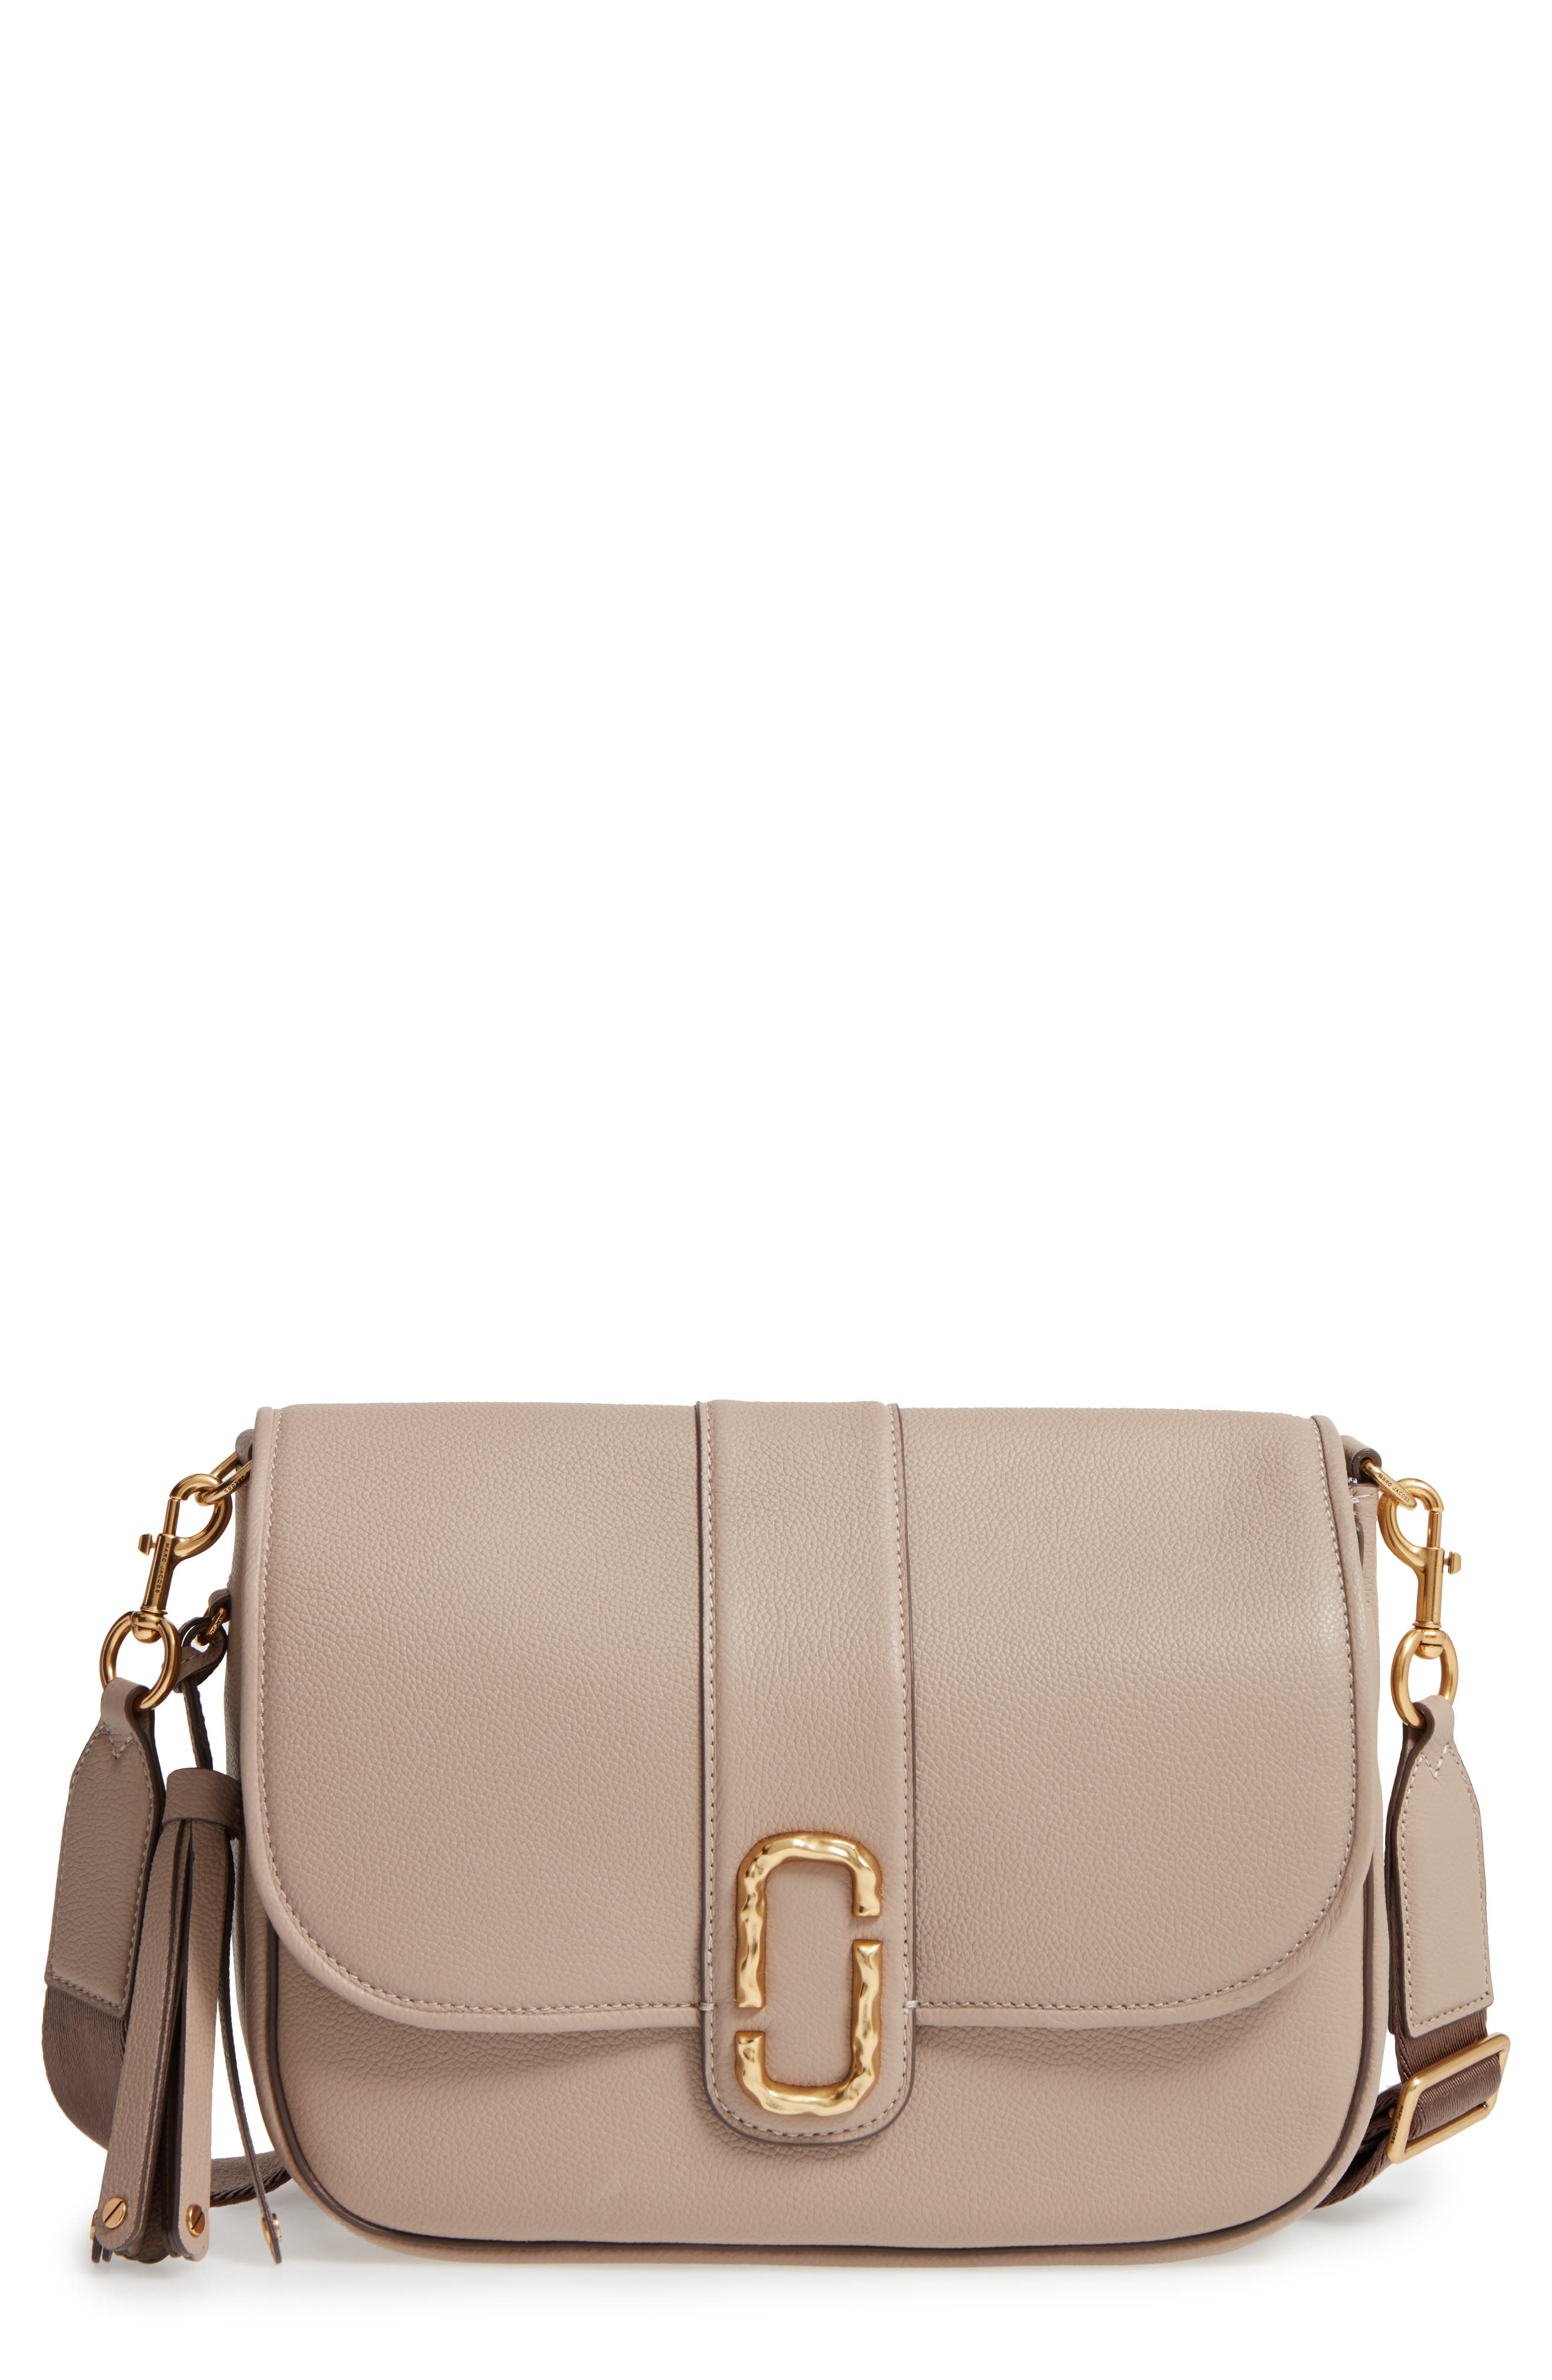 Alternate Image 1 Selected - MARC JACOBS Interlock Leather Crossbody Bag